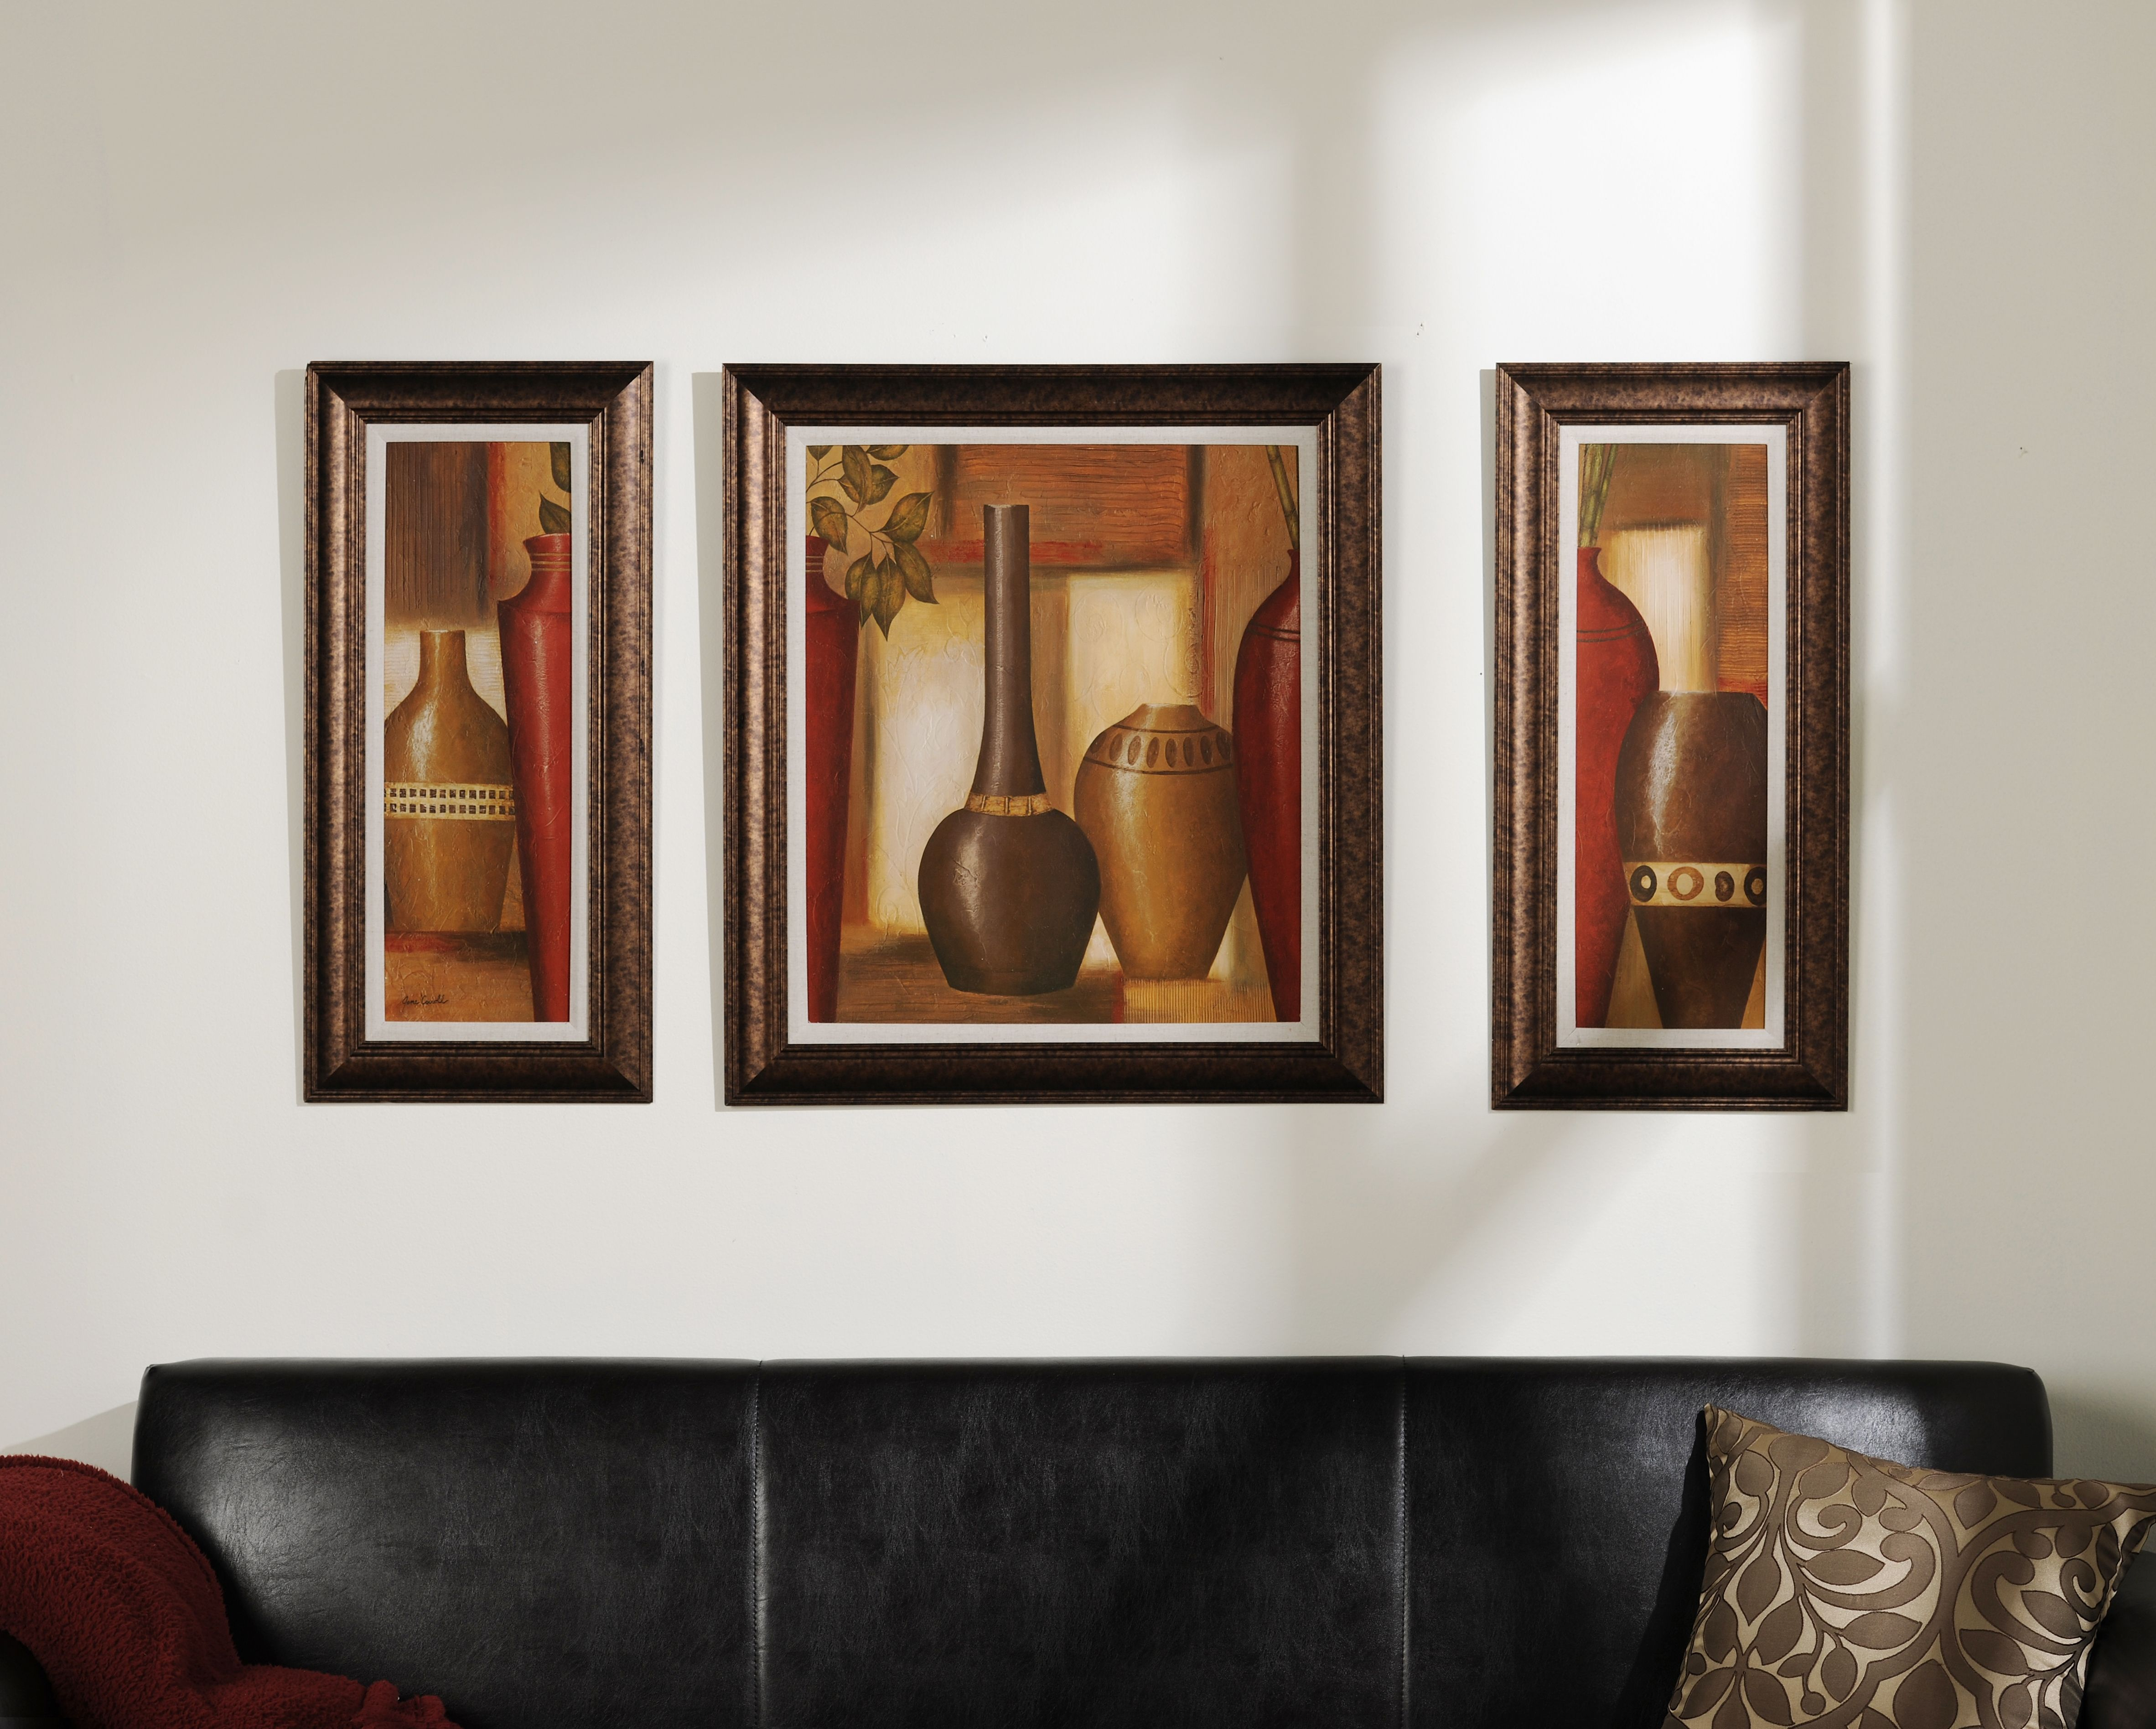 World spice vessel framed art print set of 3 empty wall spaces fill up your empty wall space with a set of 3 kirklands artwalls jeuxipadfo Gallery